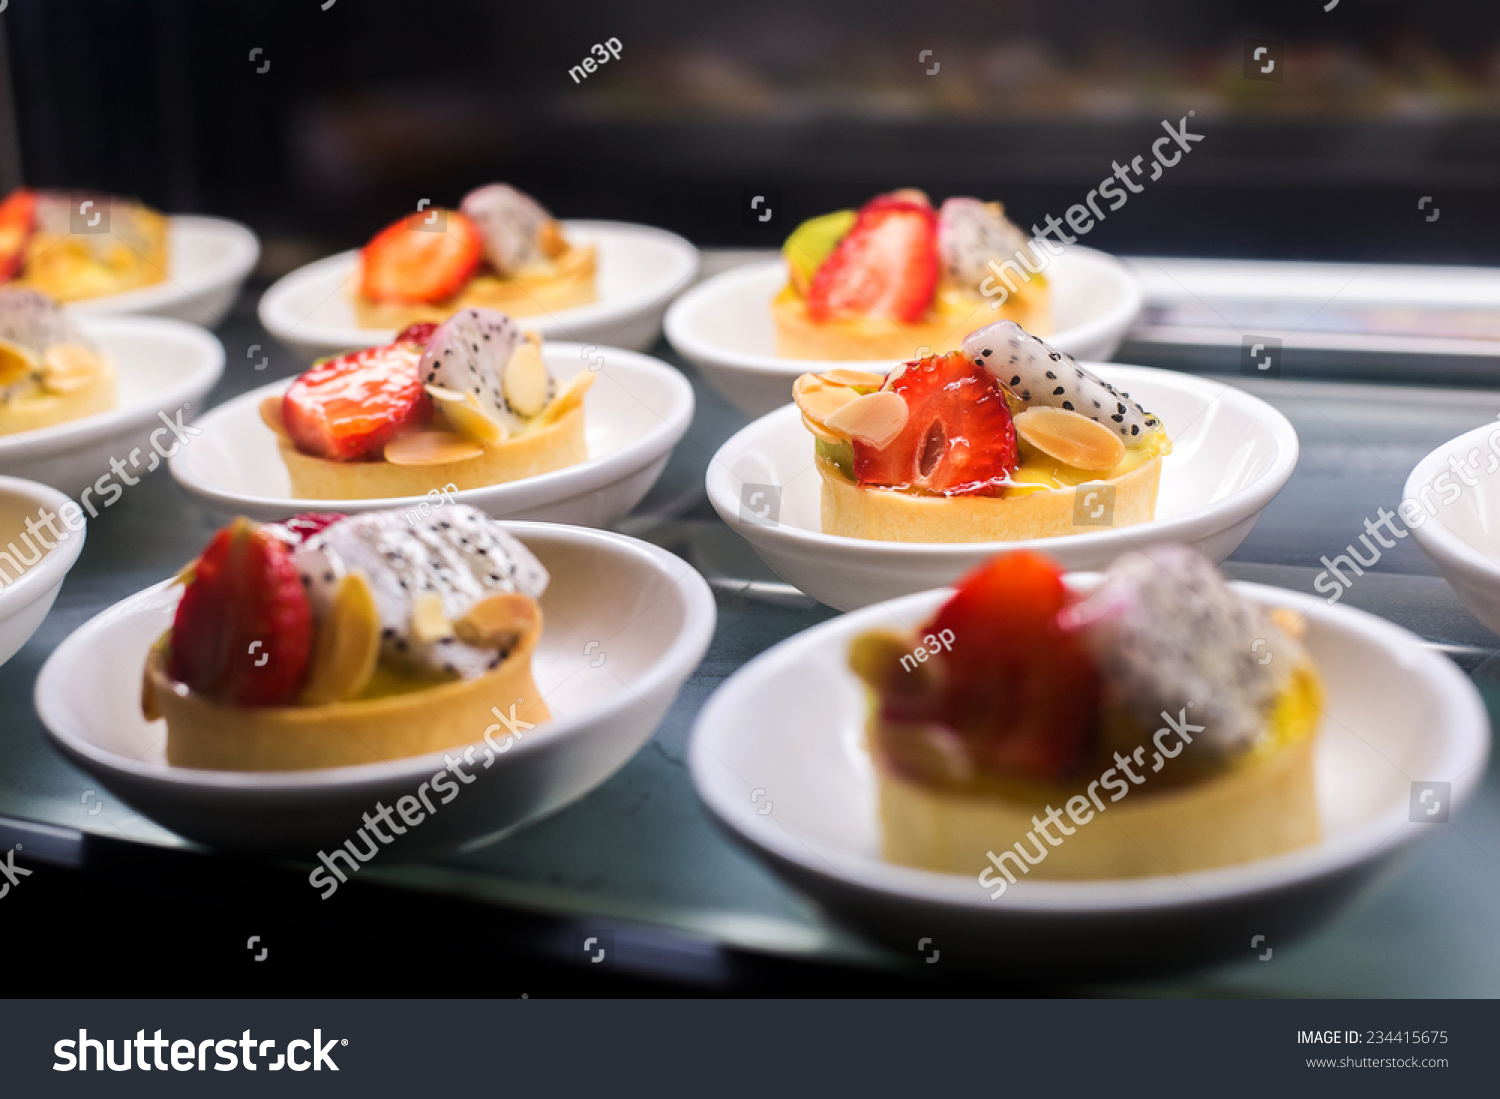 Dessert canape stock photo 234415675 shutterstock for Canape desserts